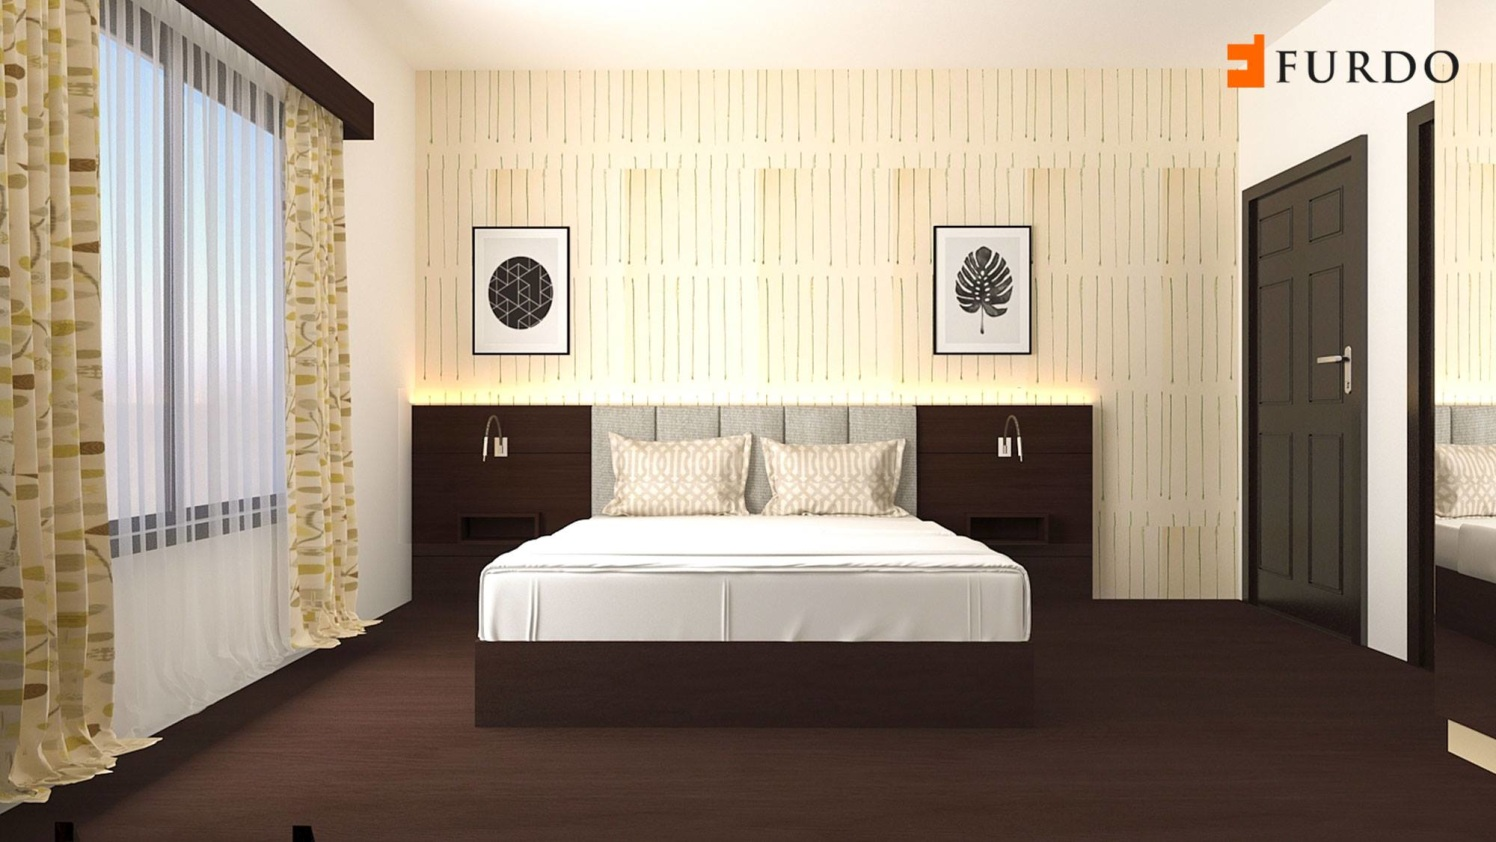 3D-Design Of Bedroom by Furdo.com Bedroom Modern | Interior Design Photos & Ideas